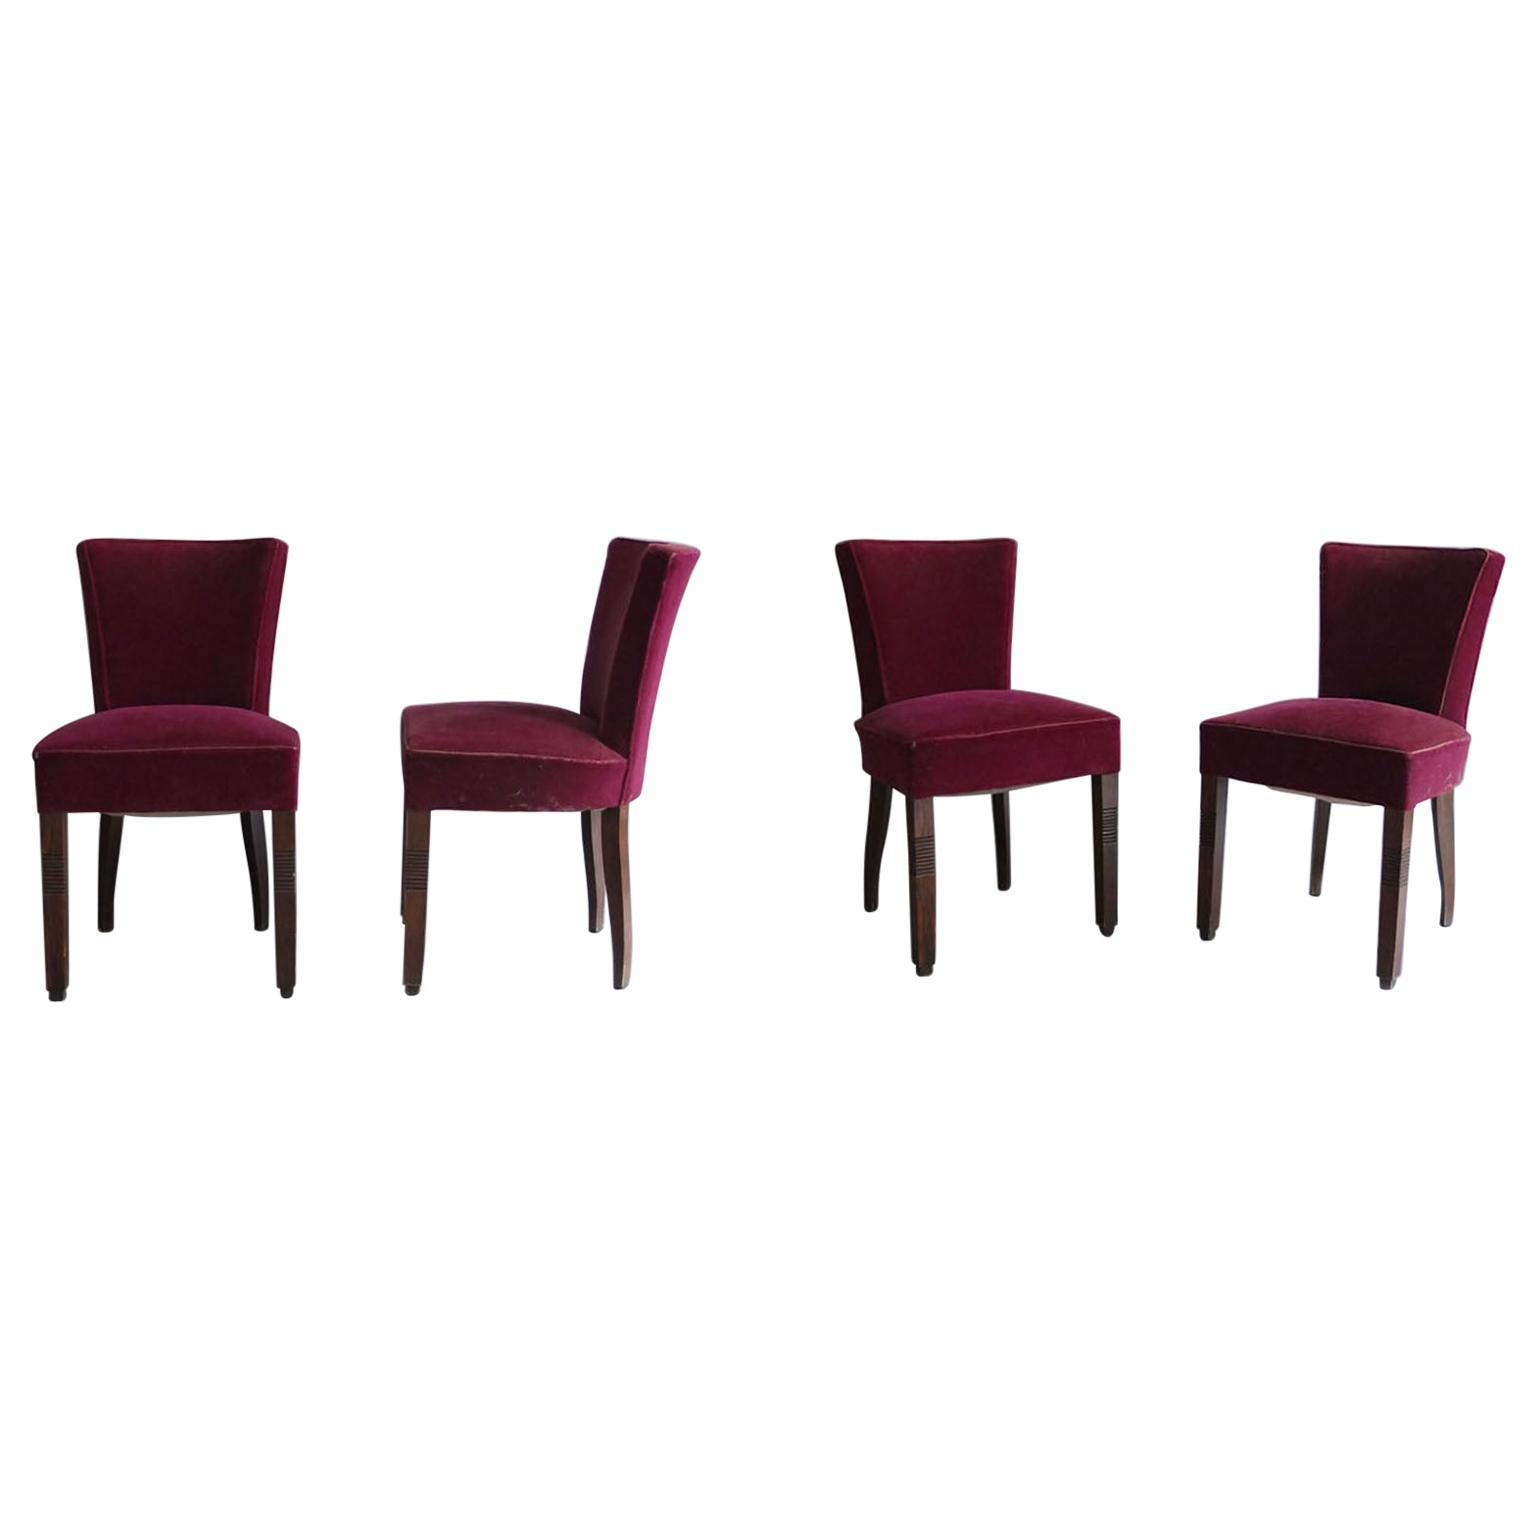 Set of Four French Art Deco Chairs by Dudouyt